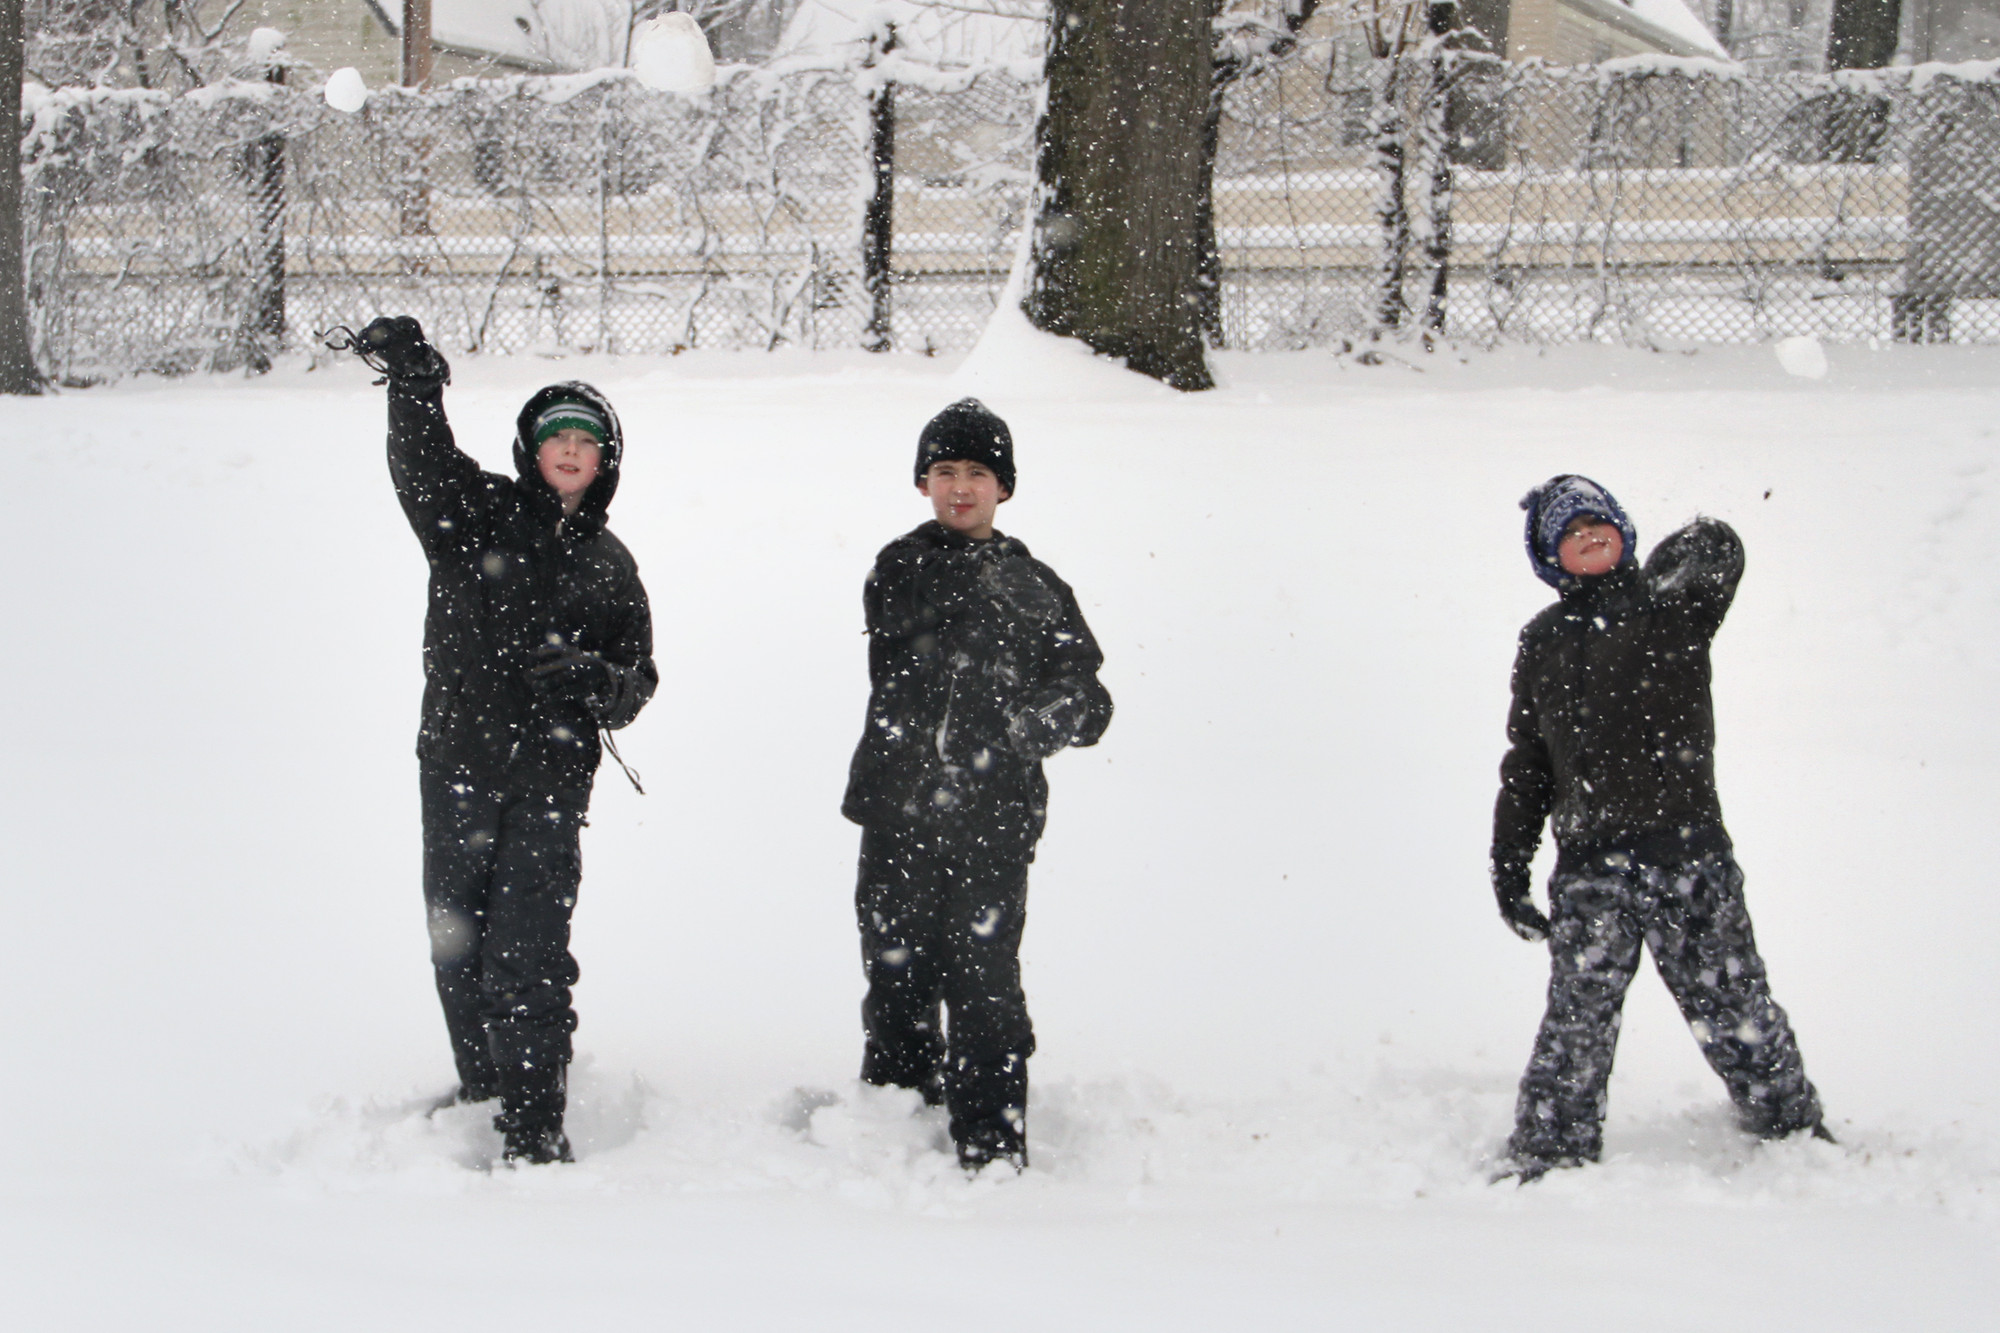 Brendan Gorman, Trevor Wallace and John Gorman tossed snowballs in Gaddis Park in Westwood, Malverne.